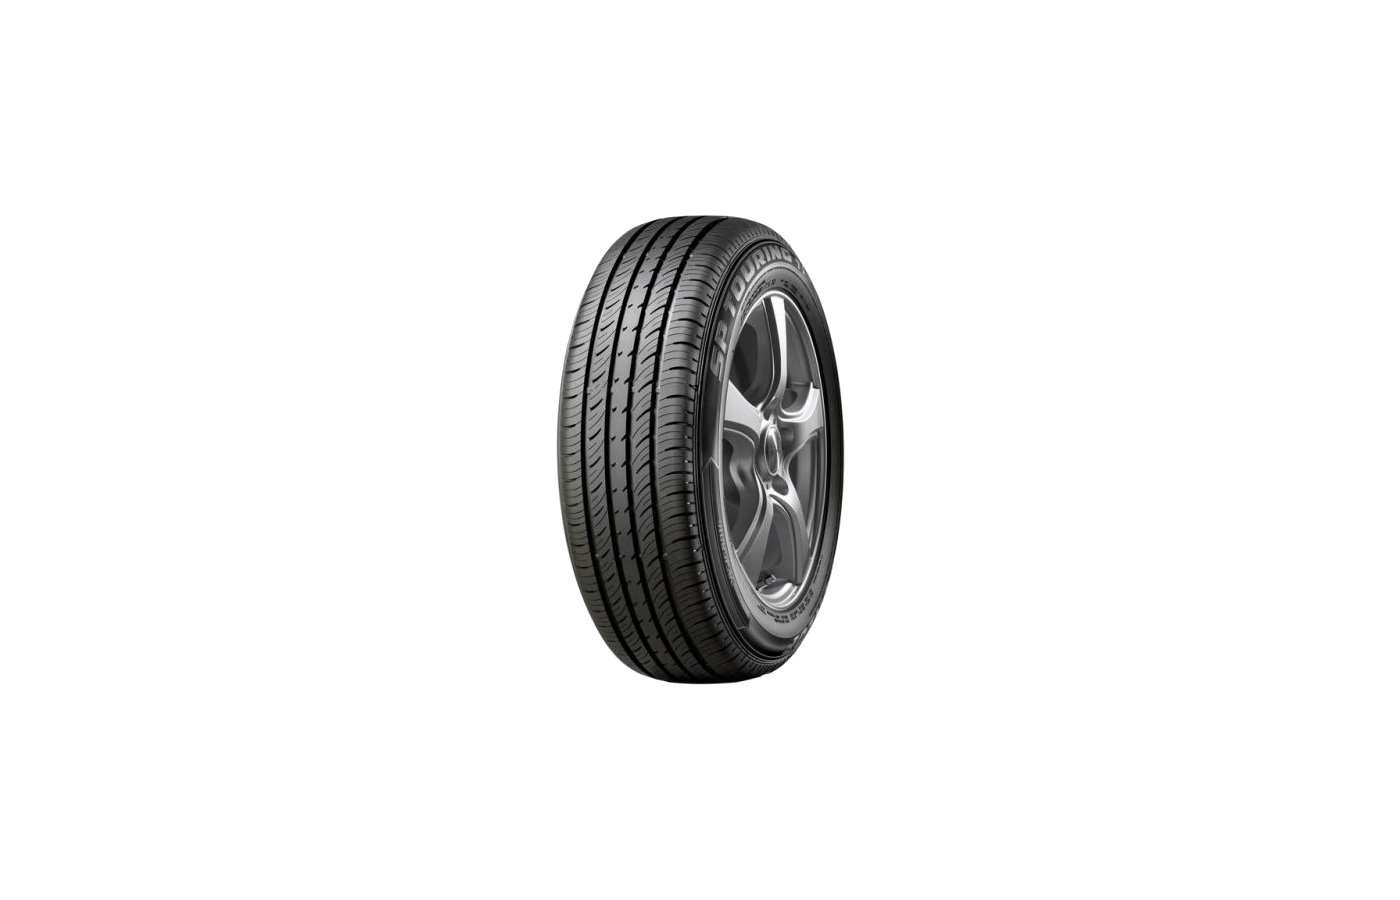 Шина Dunlop SP Touring T1 185/65 R14 TL 86T